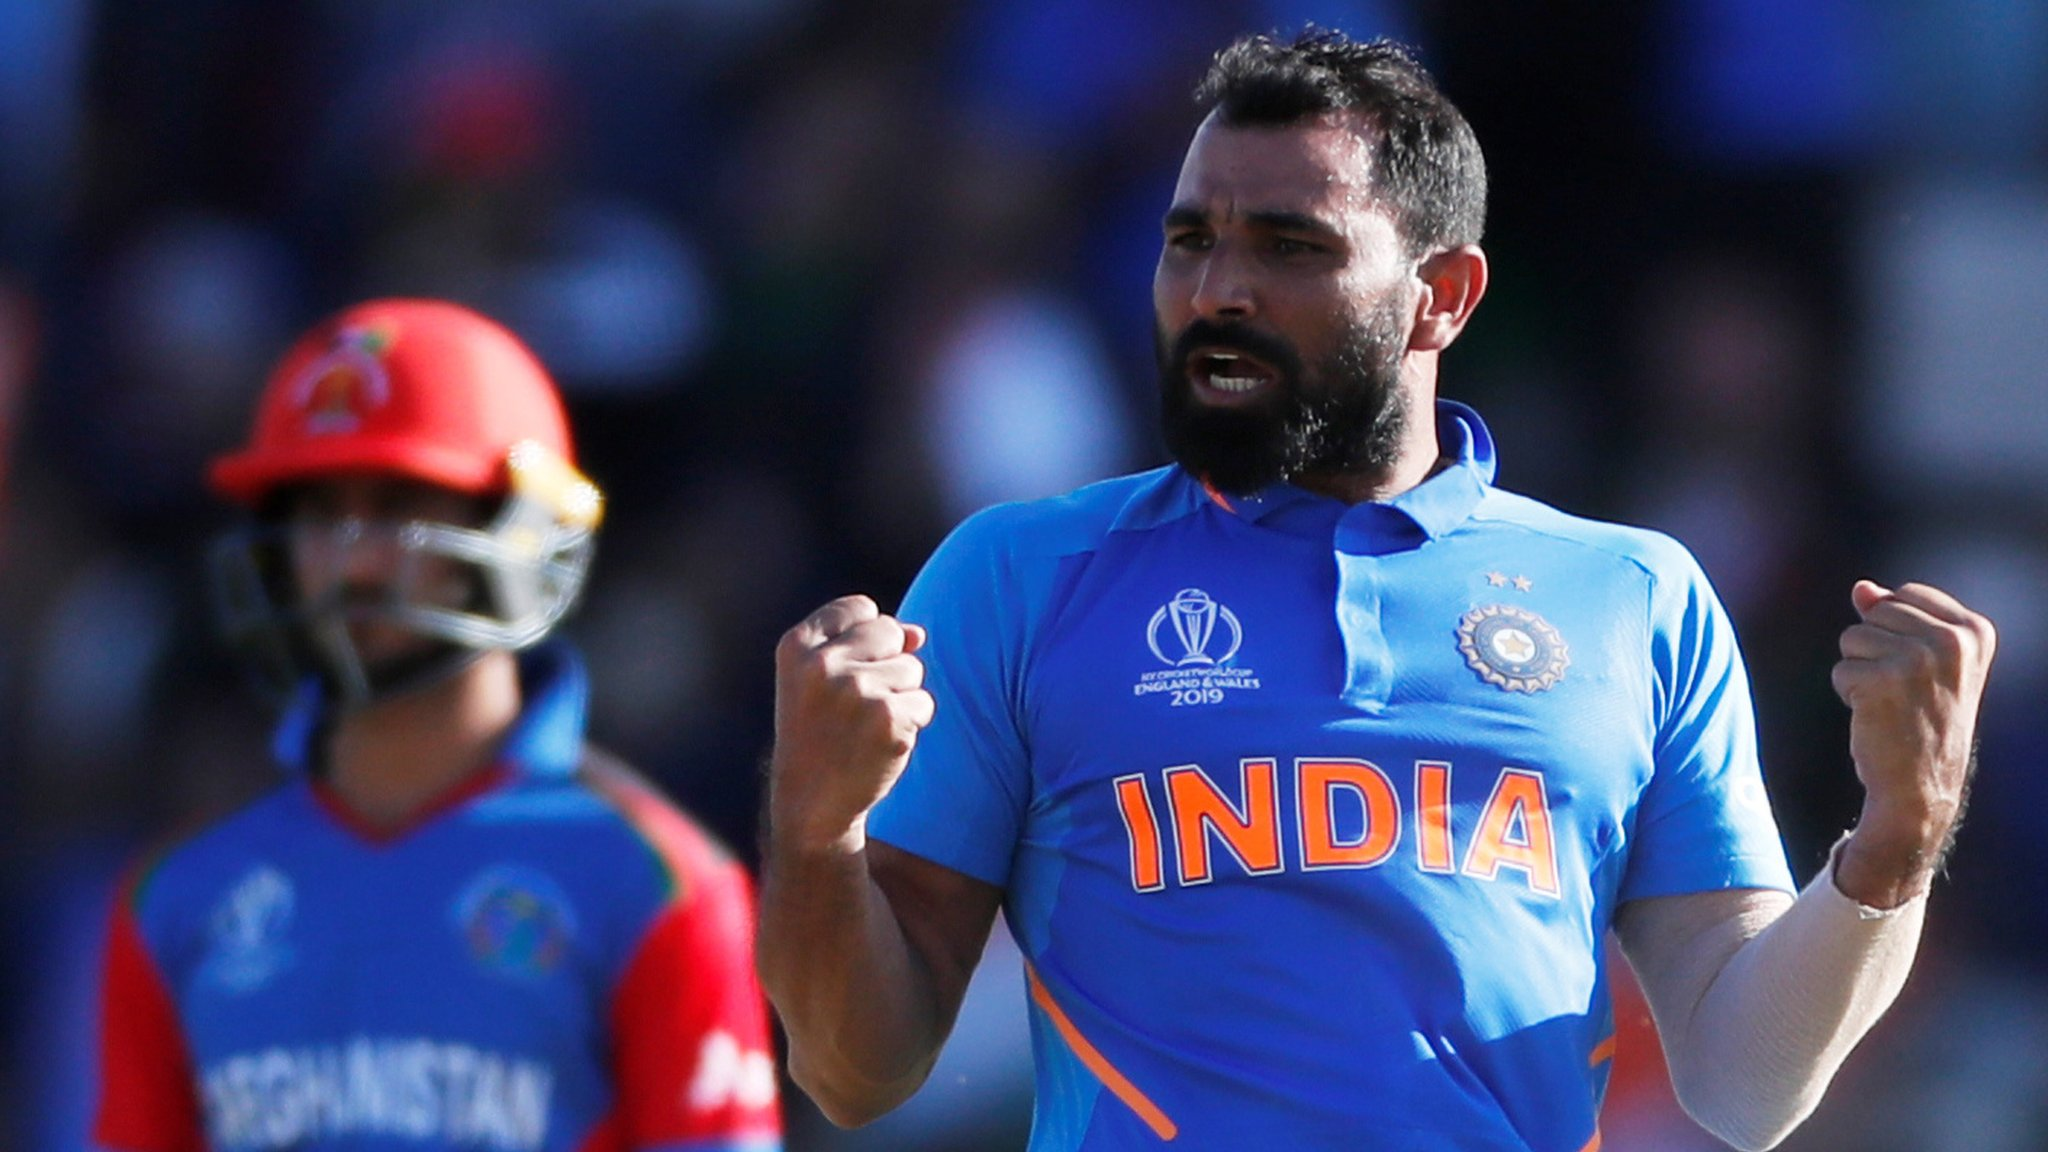 Shami's hat-trick helps India beat Afghanistan; Kohli top scores